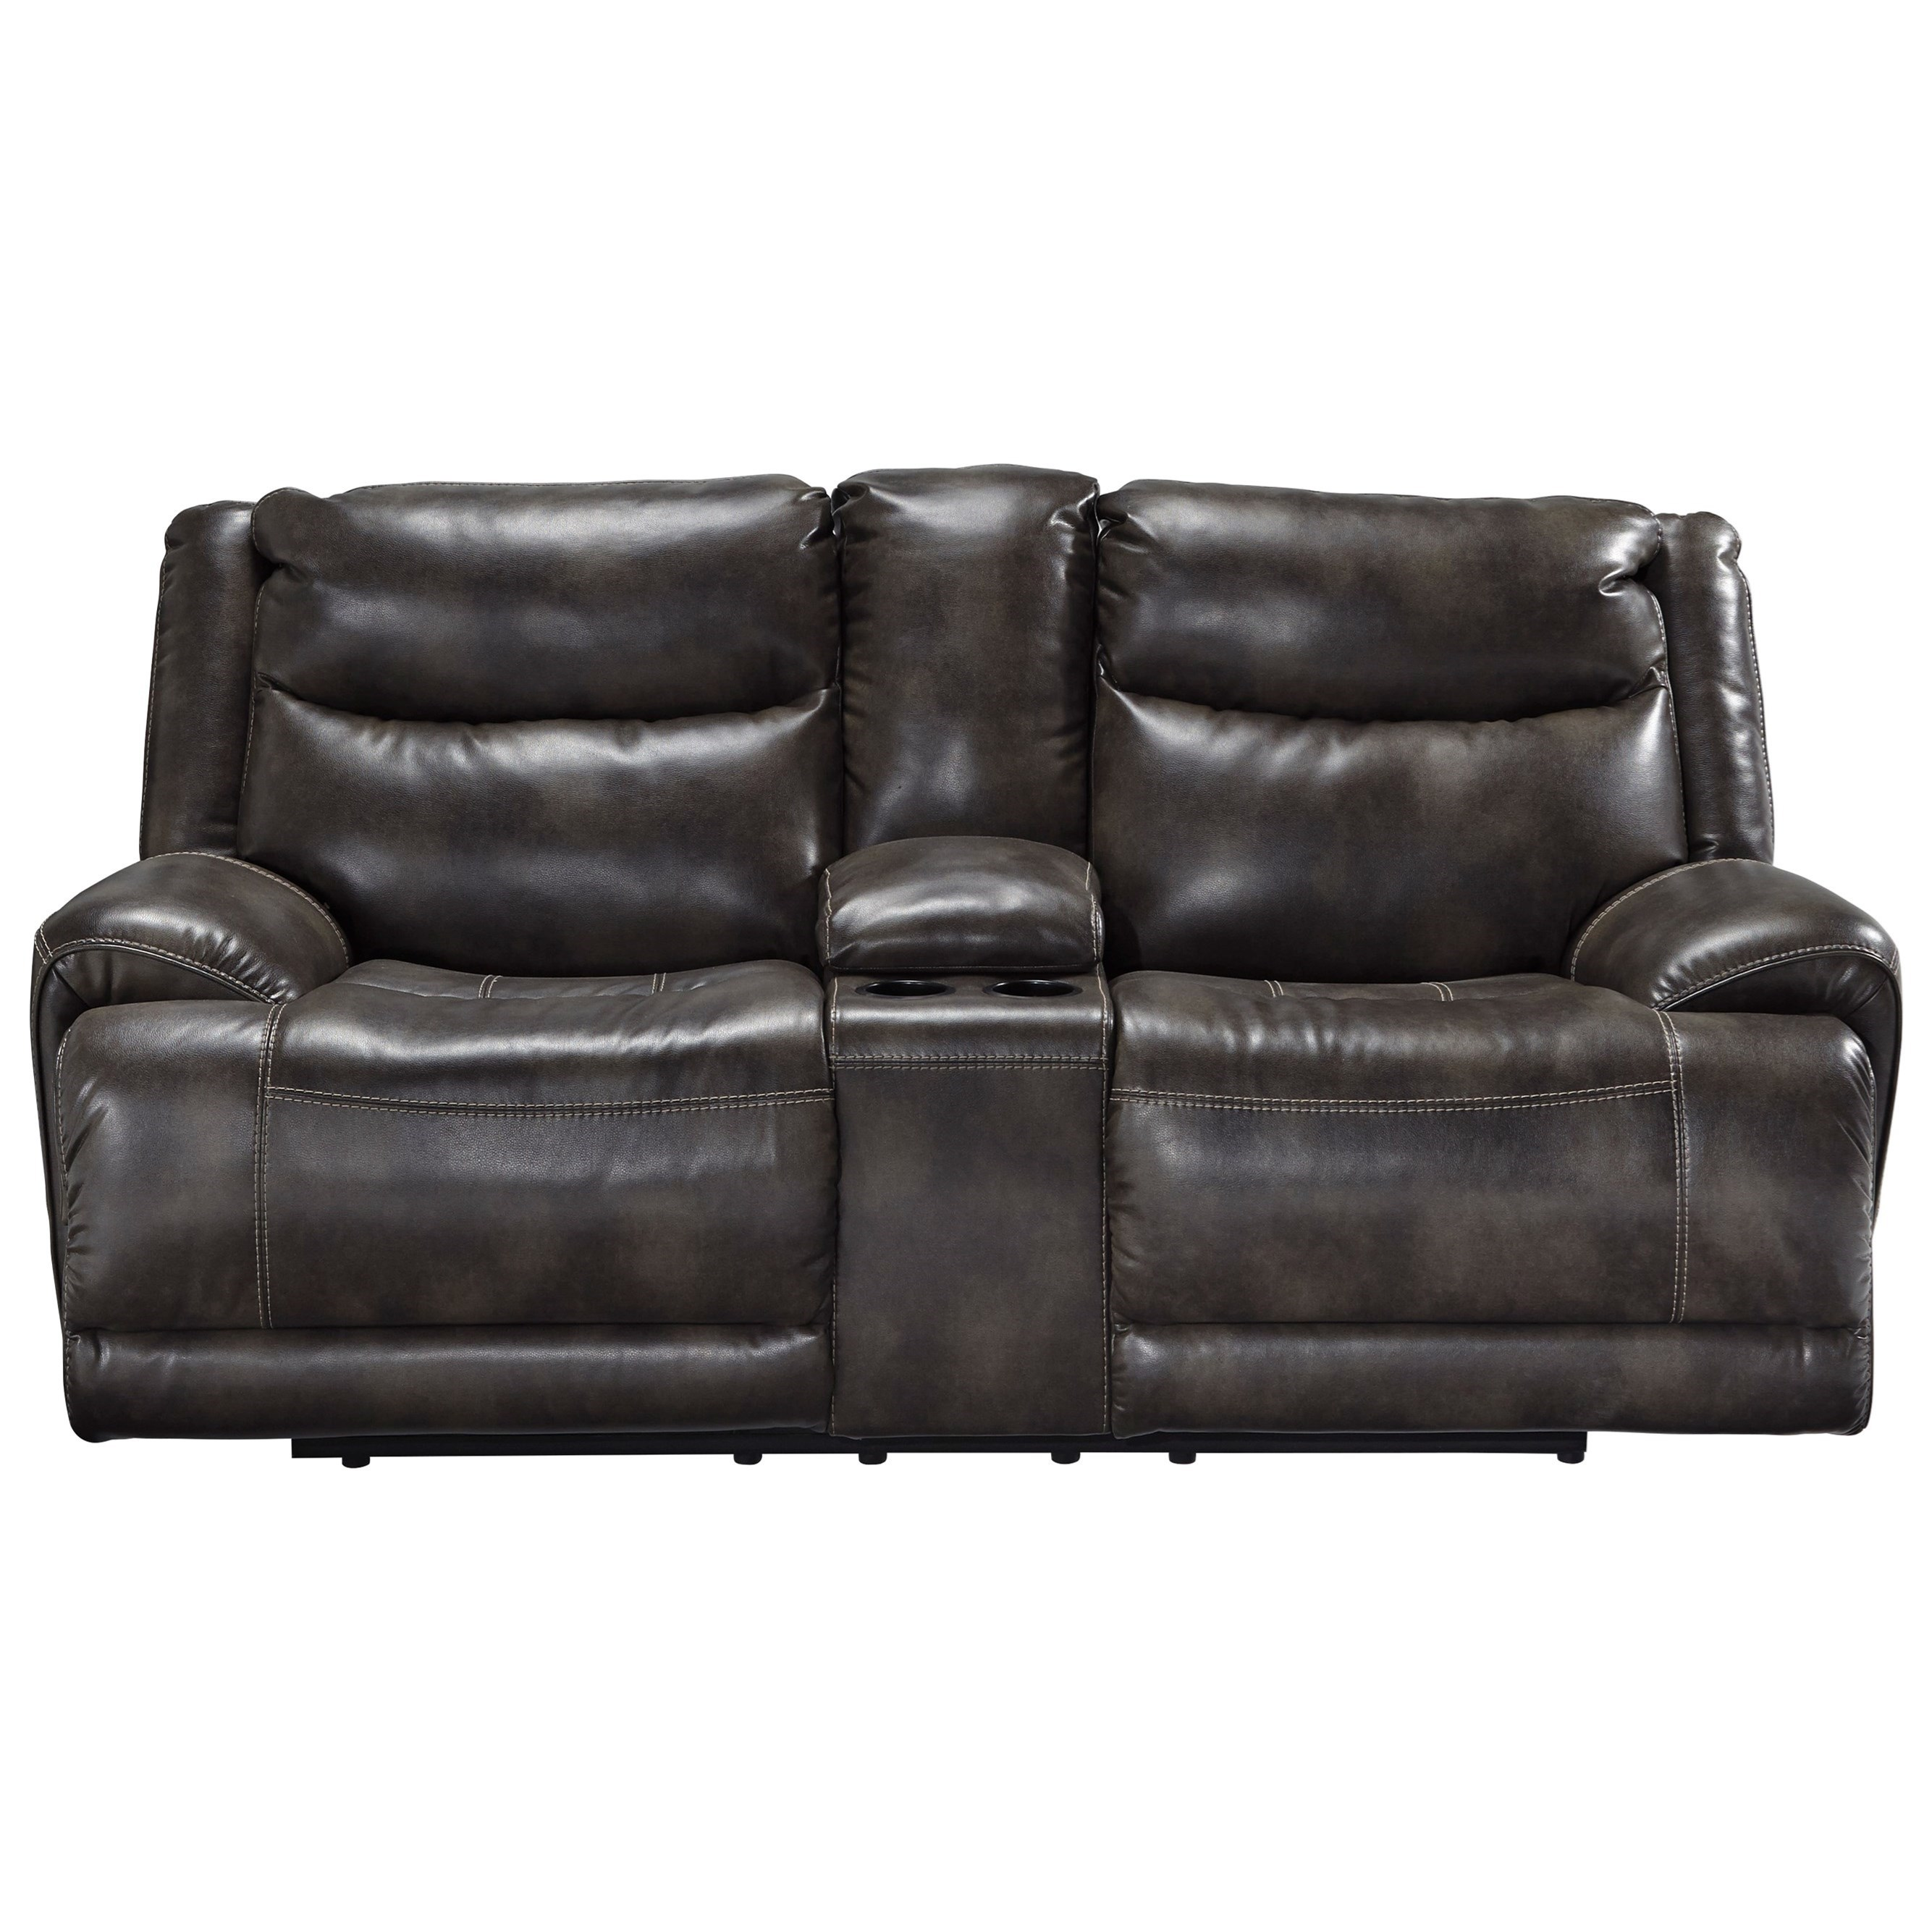 Benchcraft Brinlack Power Reclining Loveseat - Item Number: 8560218